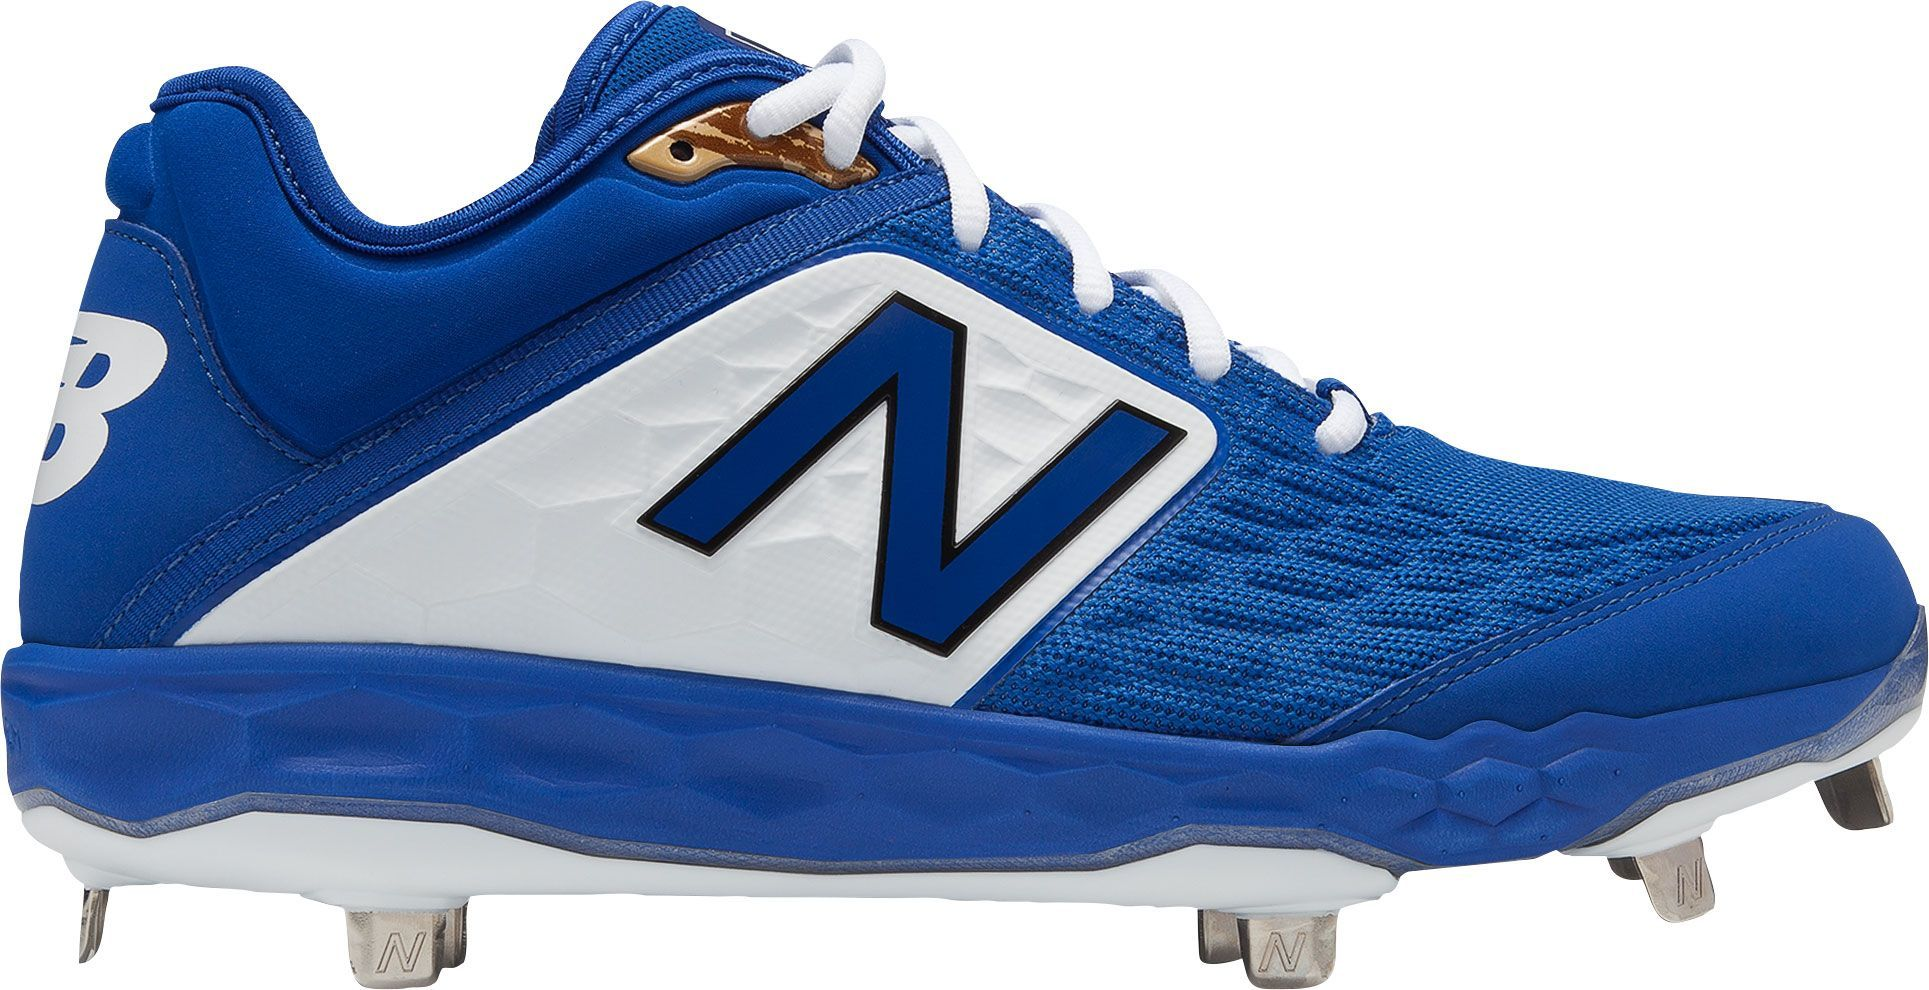 f84656f77417 New Balance Men's 3000 V4 Metal Baseball Cleats, Size: 7.0, Red ...